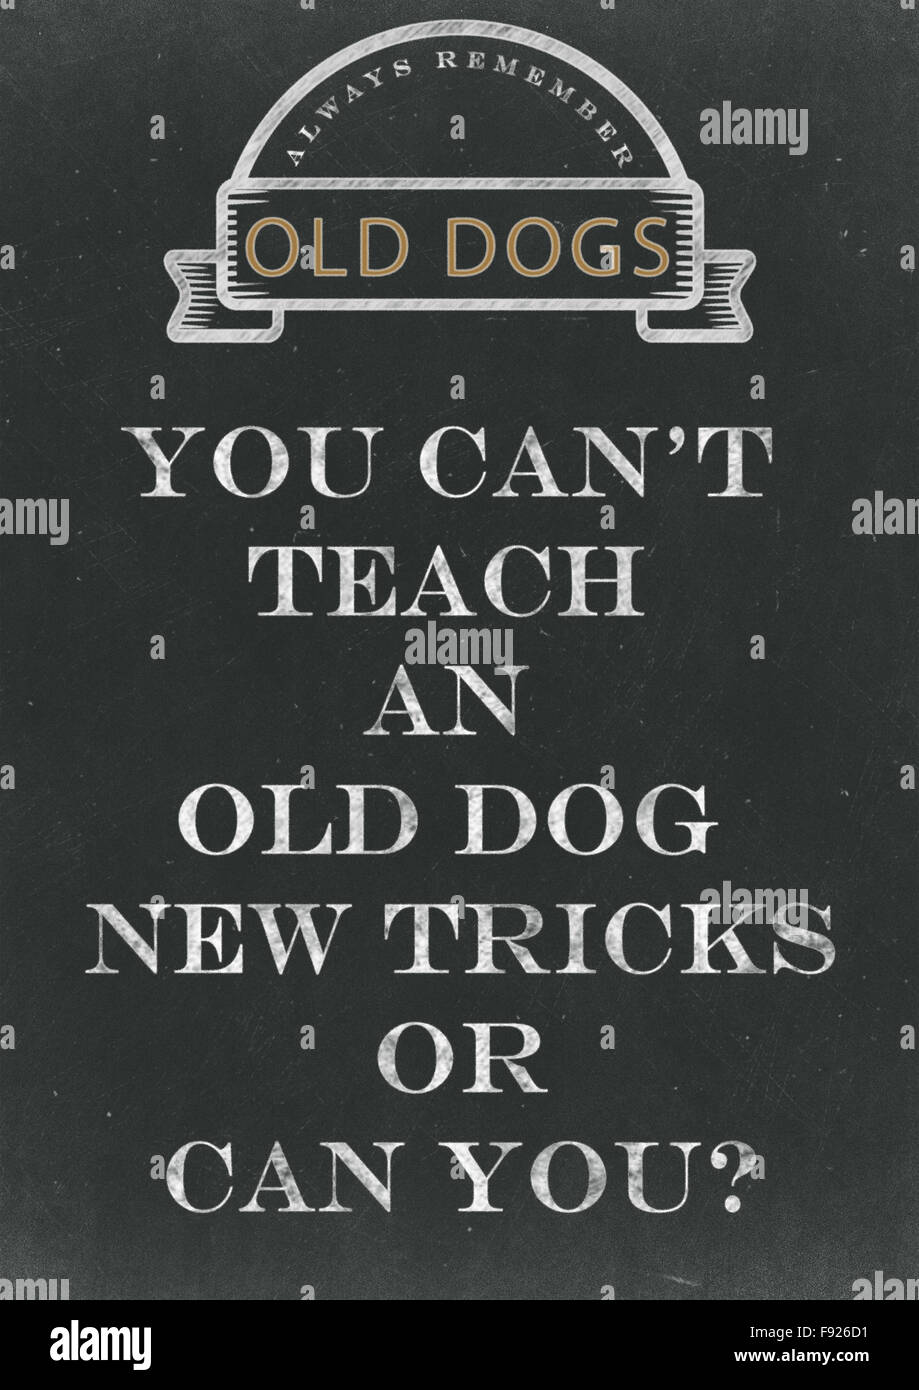 You Can't Teach An Old Dog New Tricks Hand Written On A Chalkboard - Stock Image